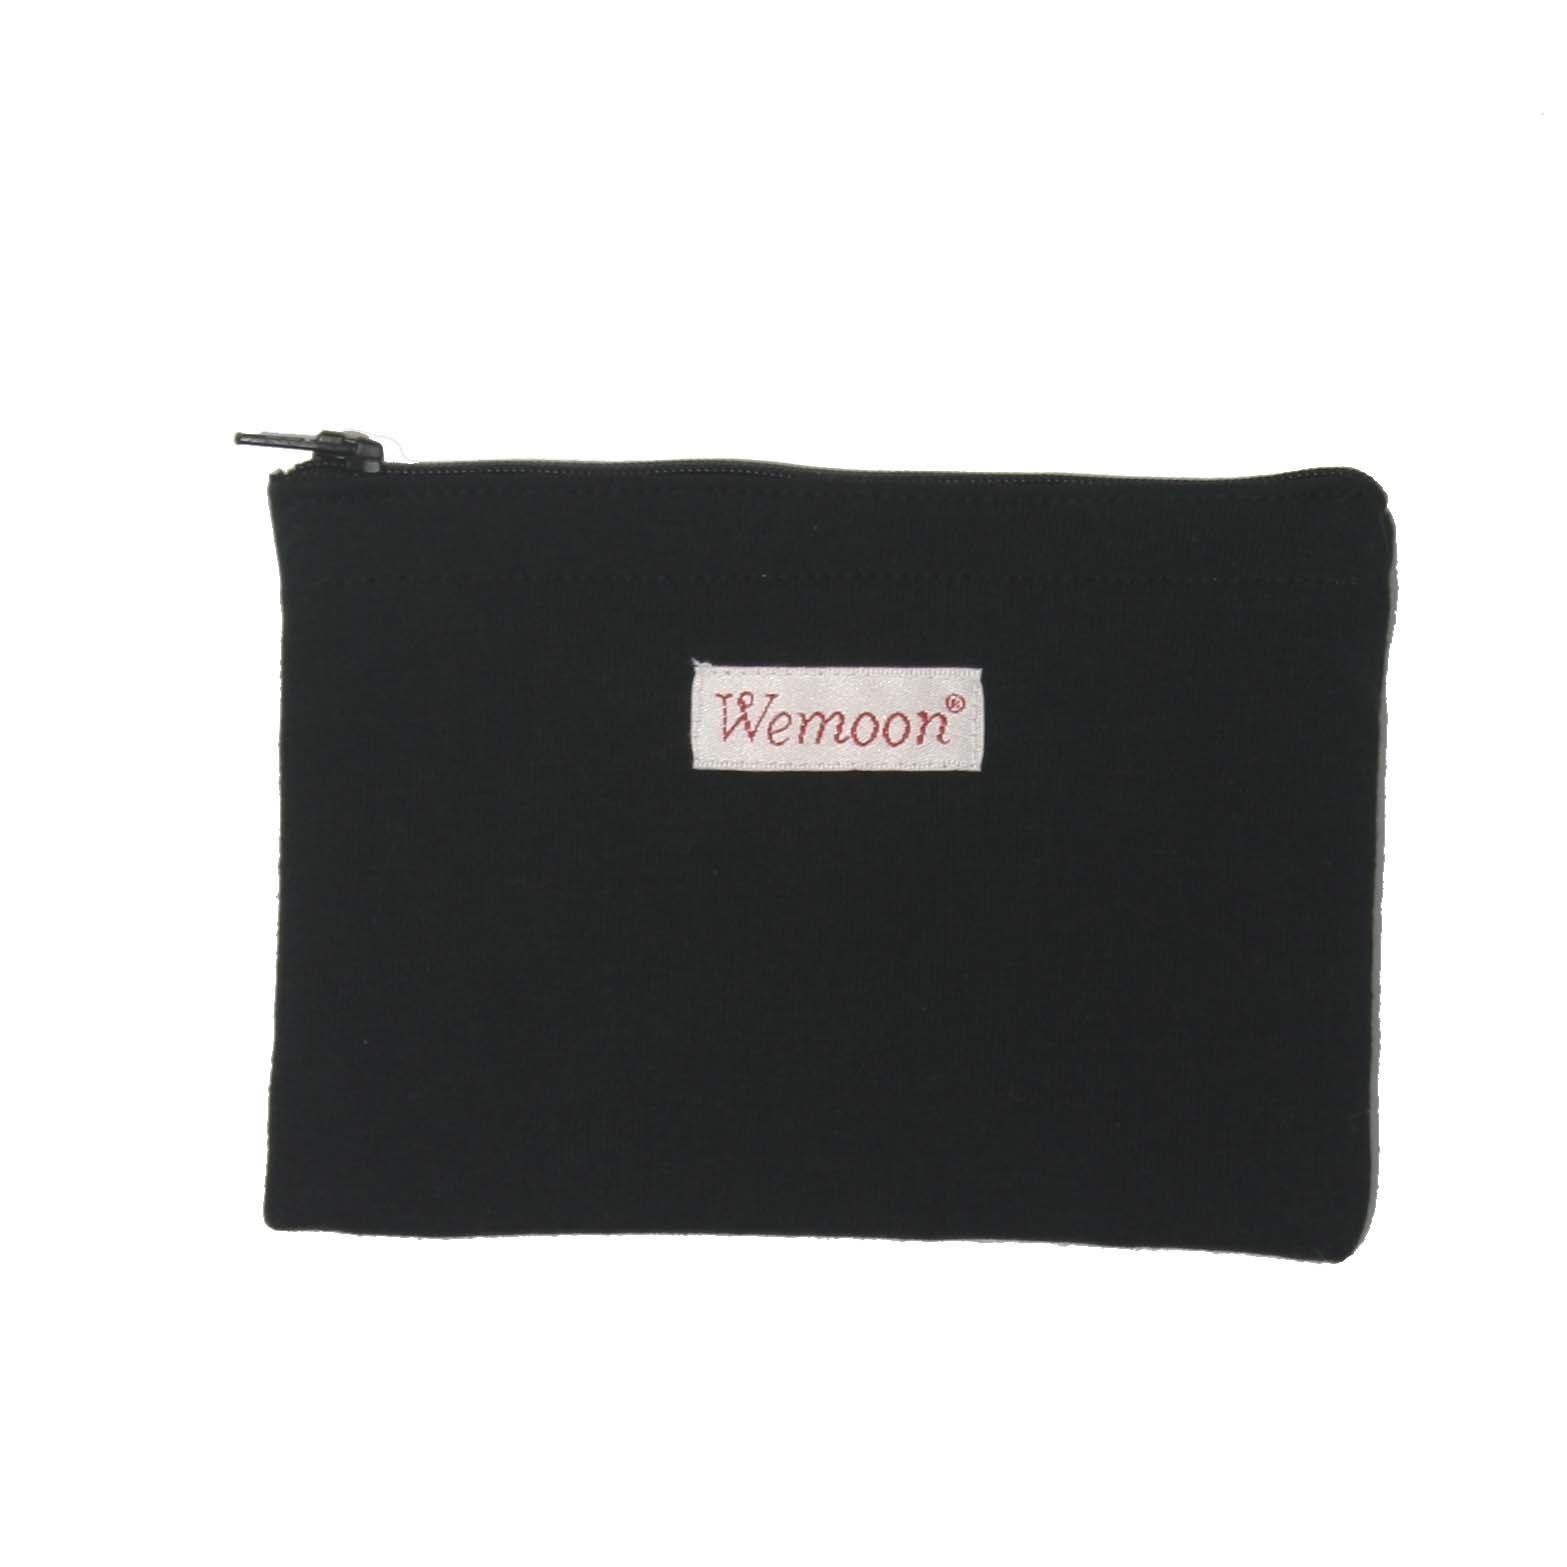 Slimline Moonpurse - Black